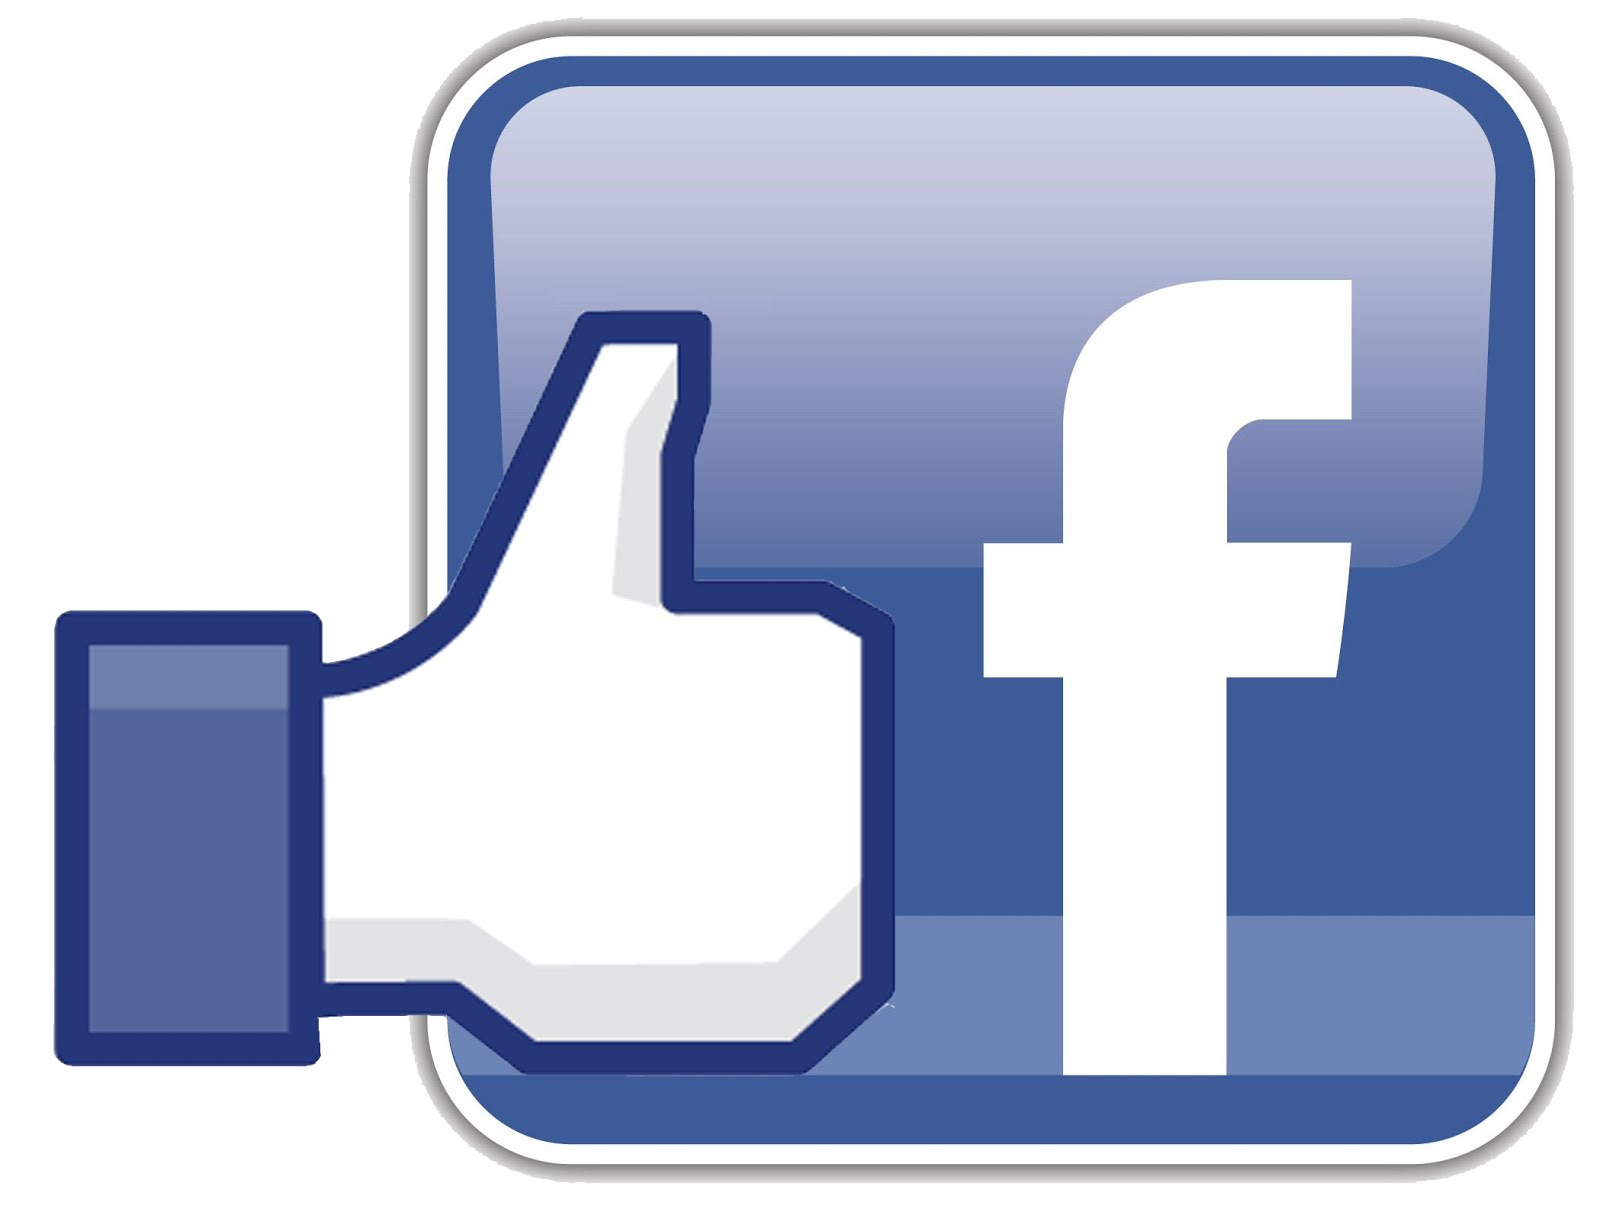 Facebook clipart logo. Png like button